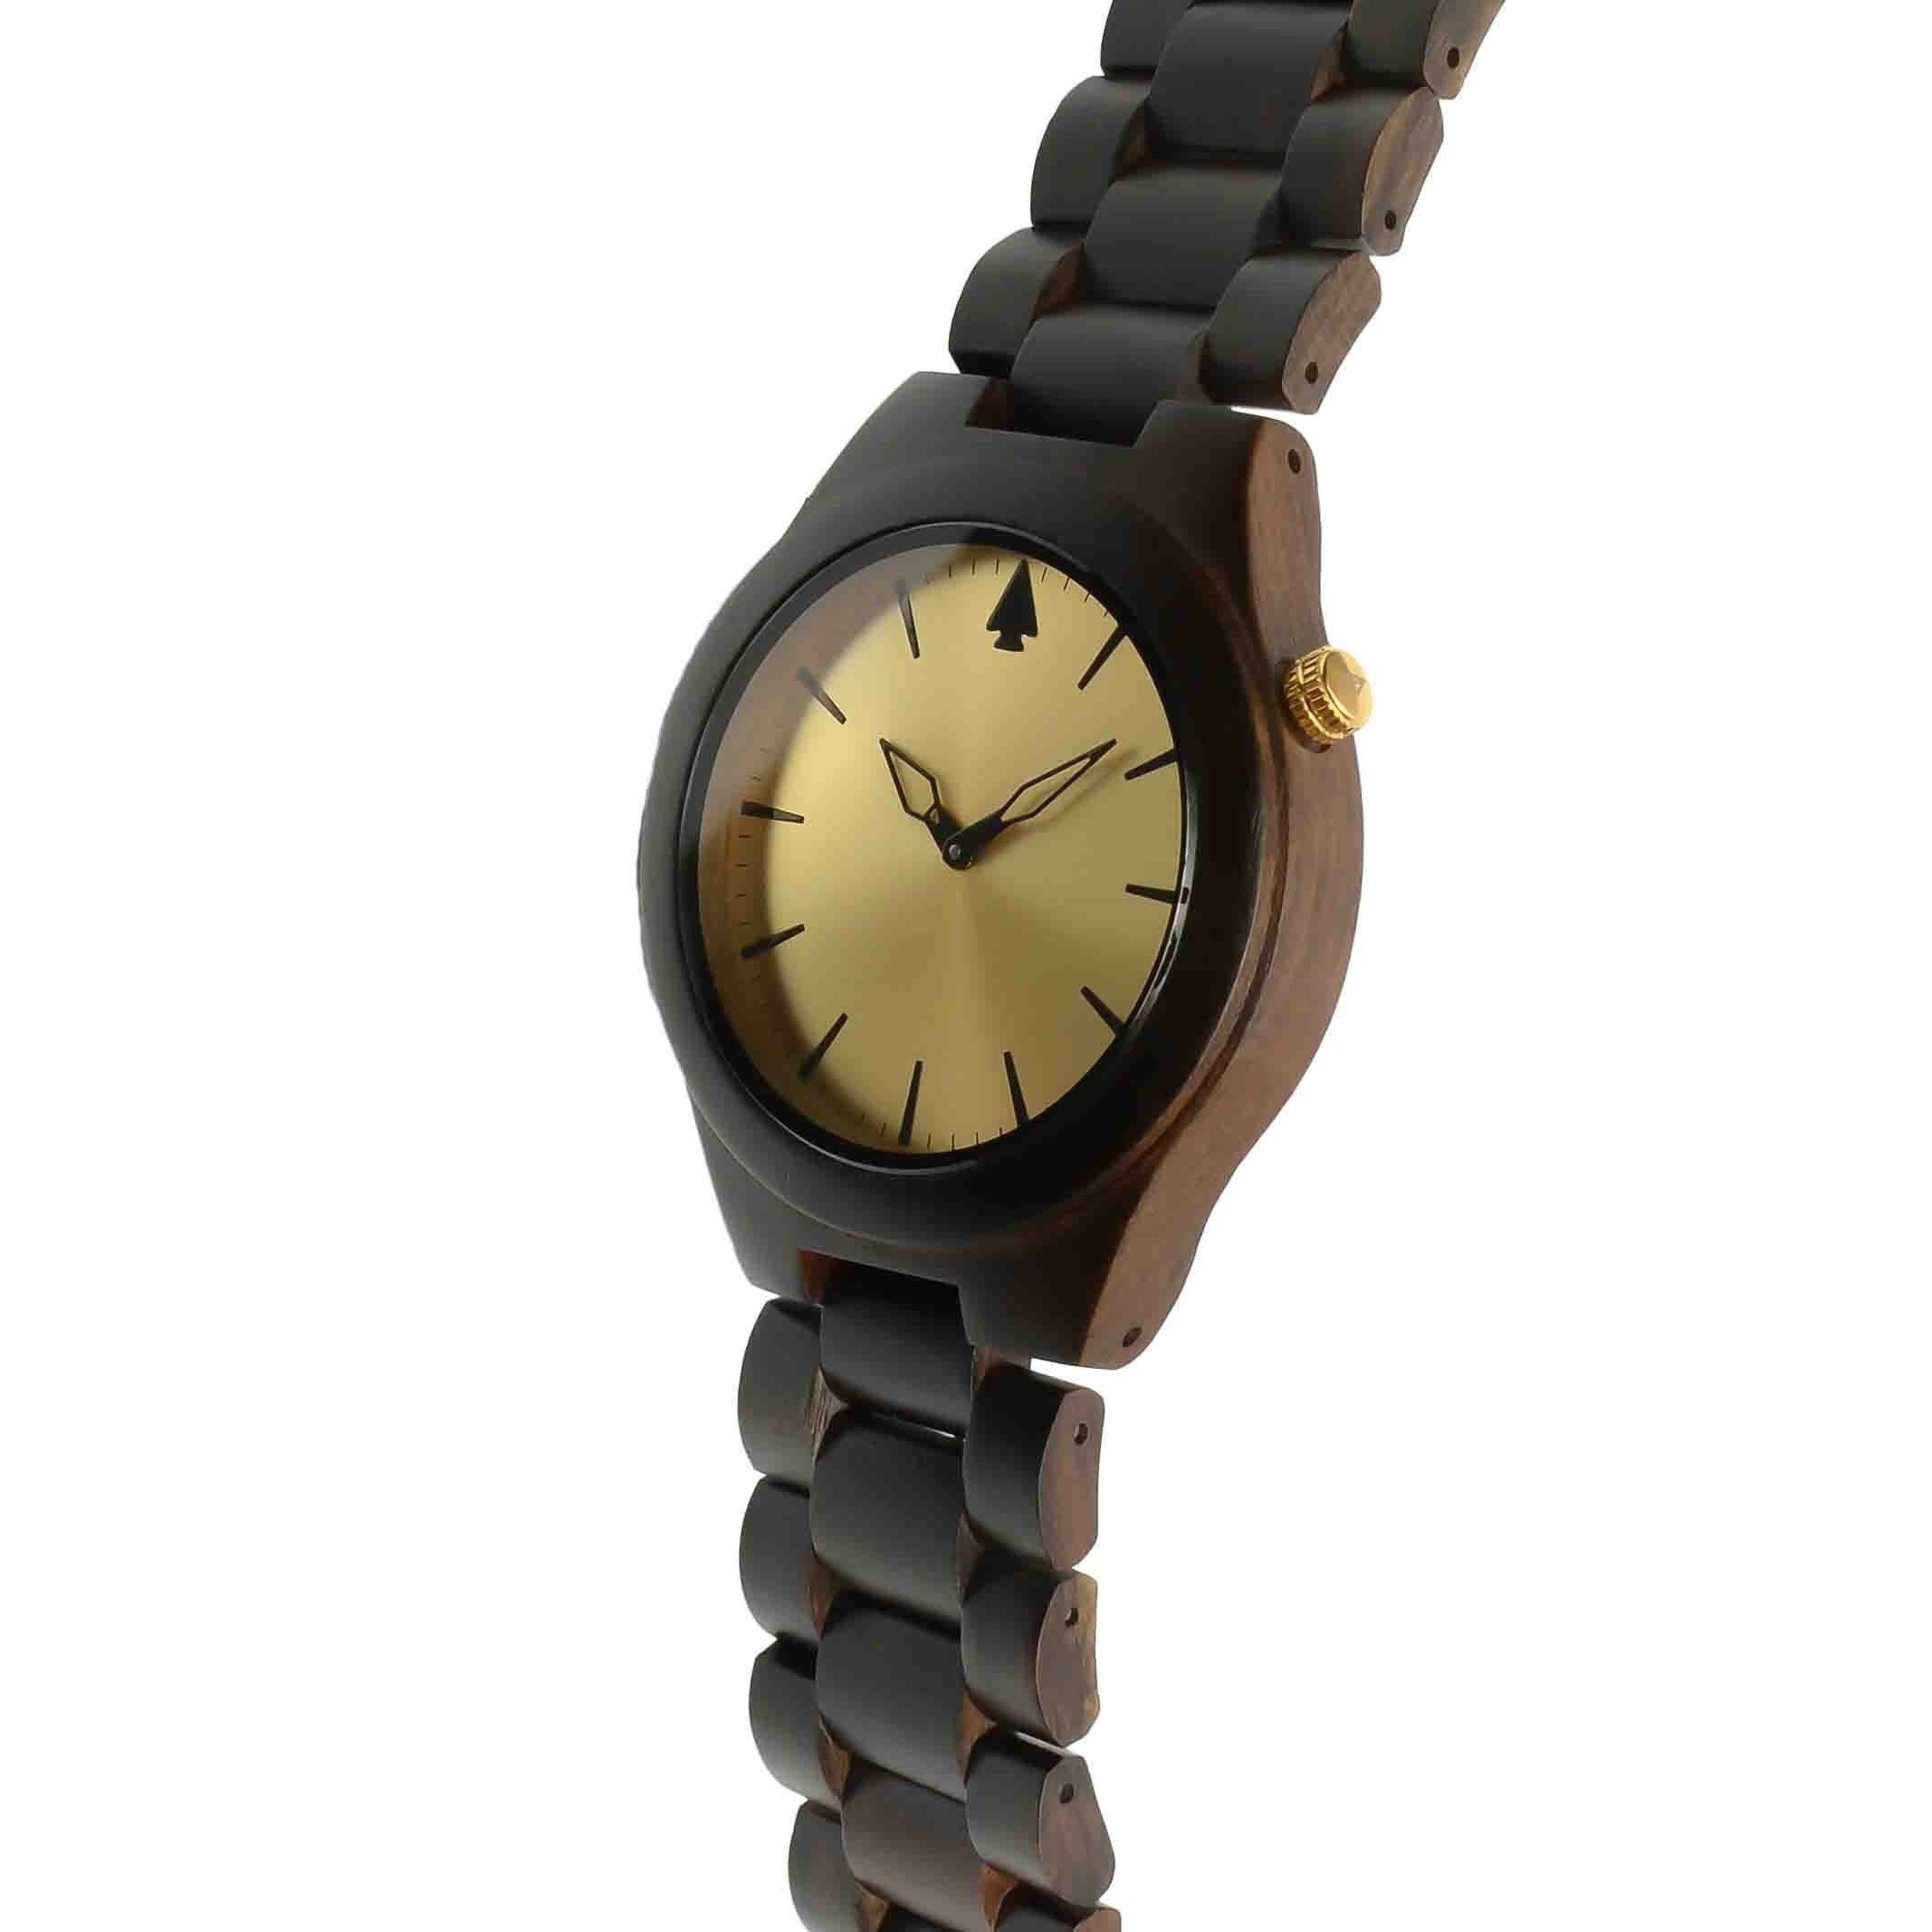 jordcora simple jordwatch sojourns jord jordwatches watches watch